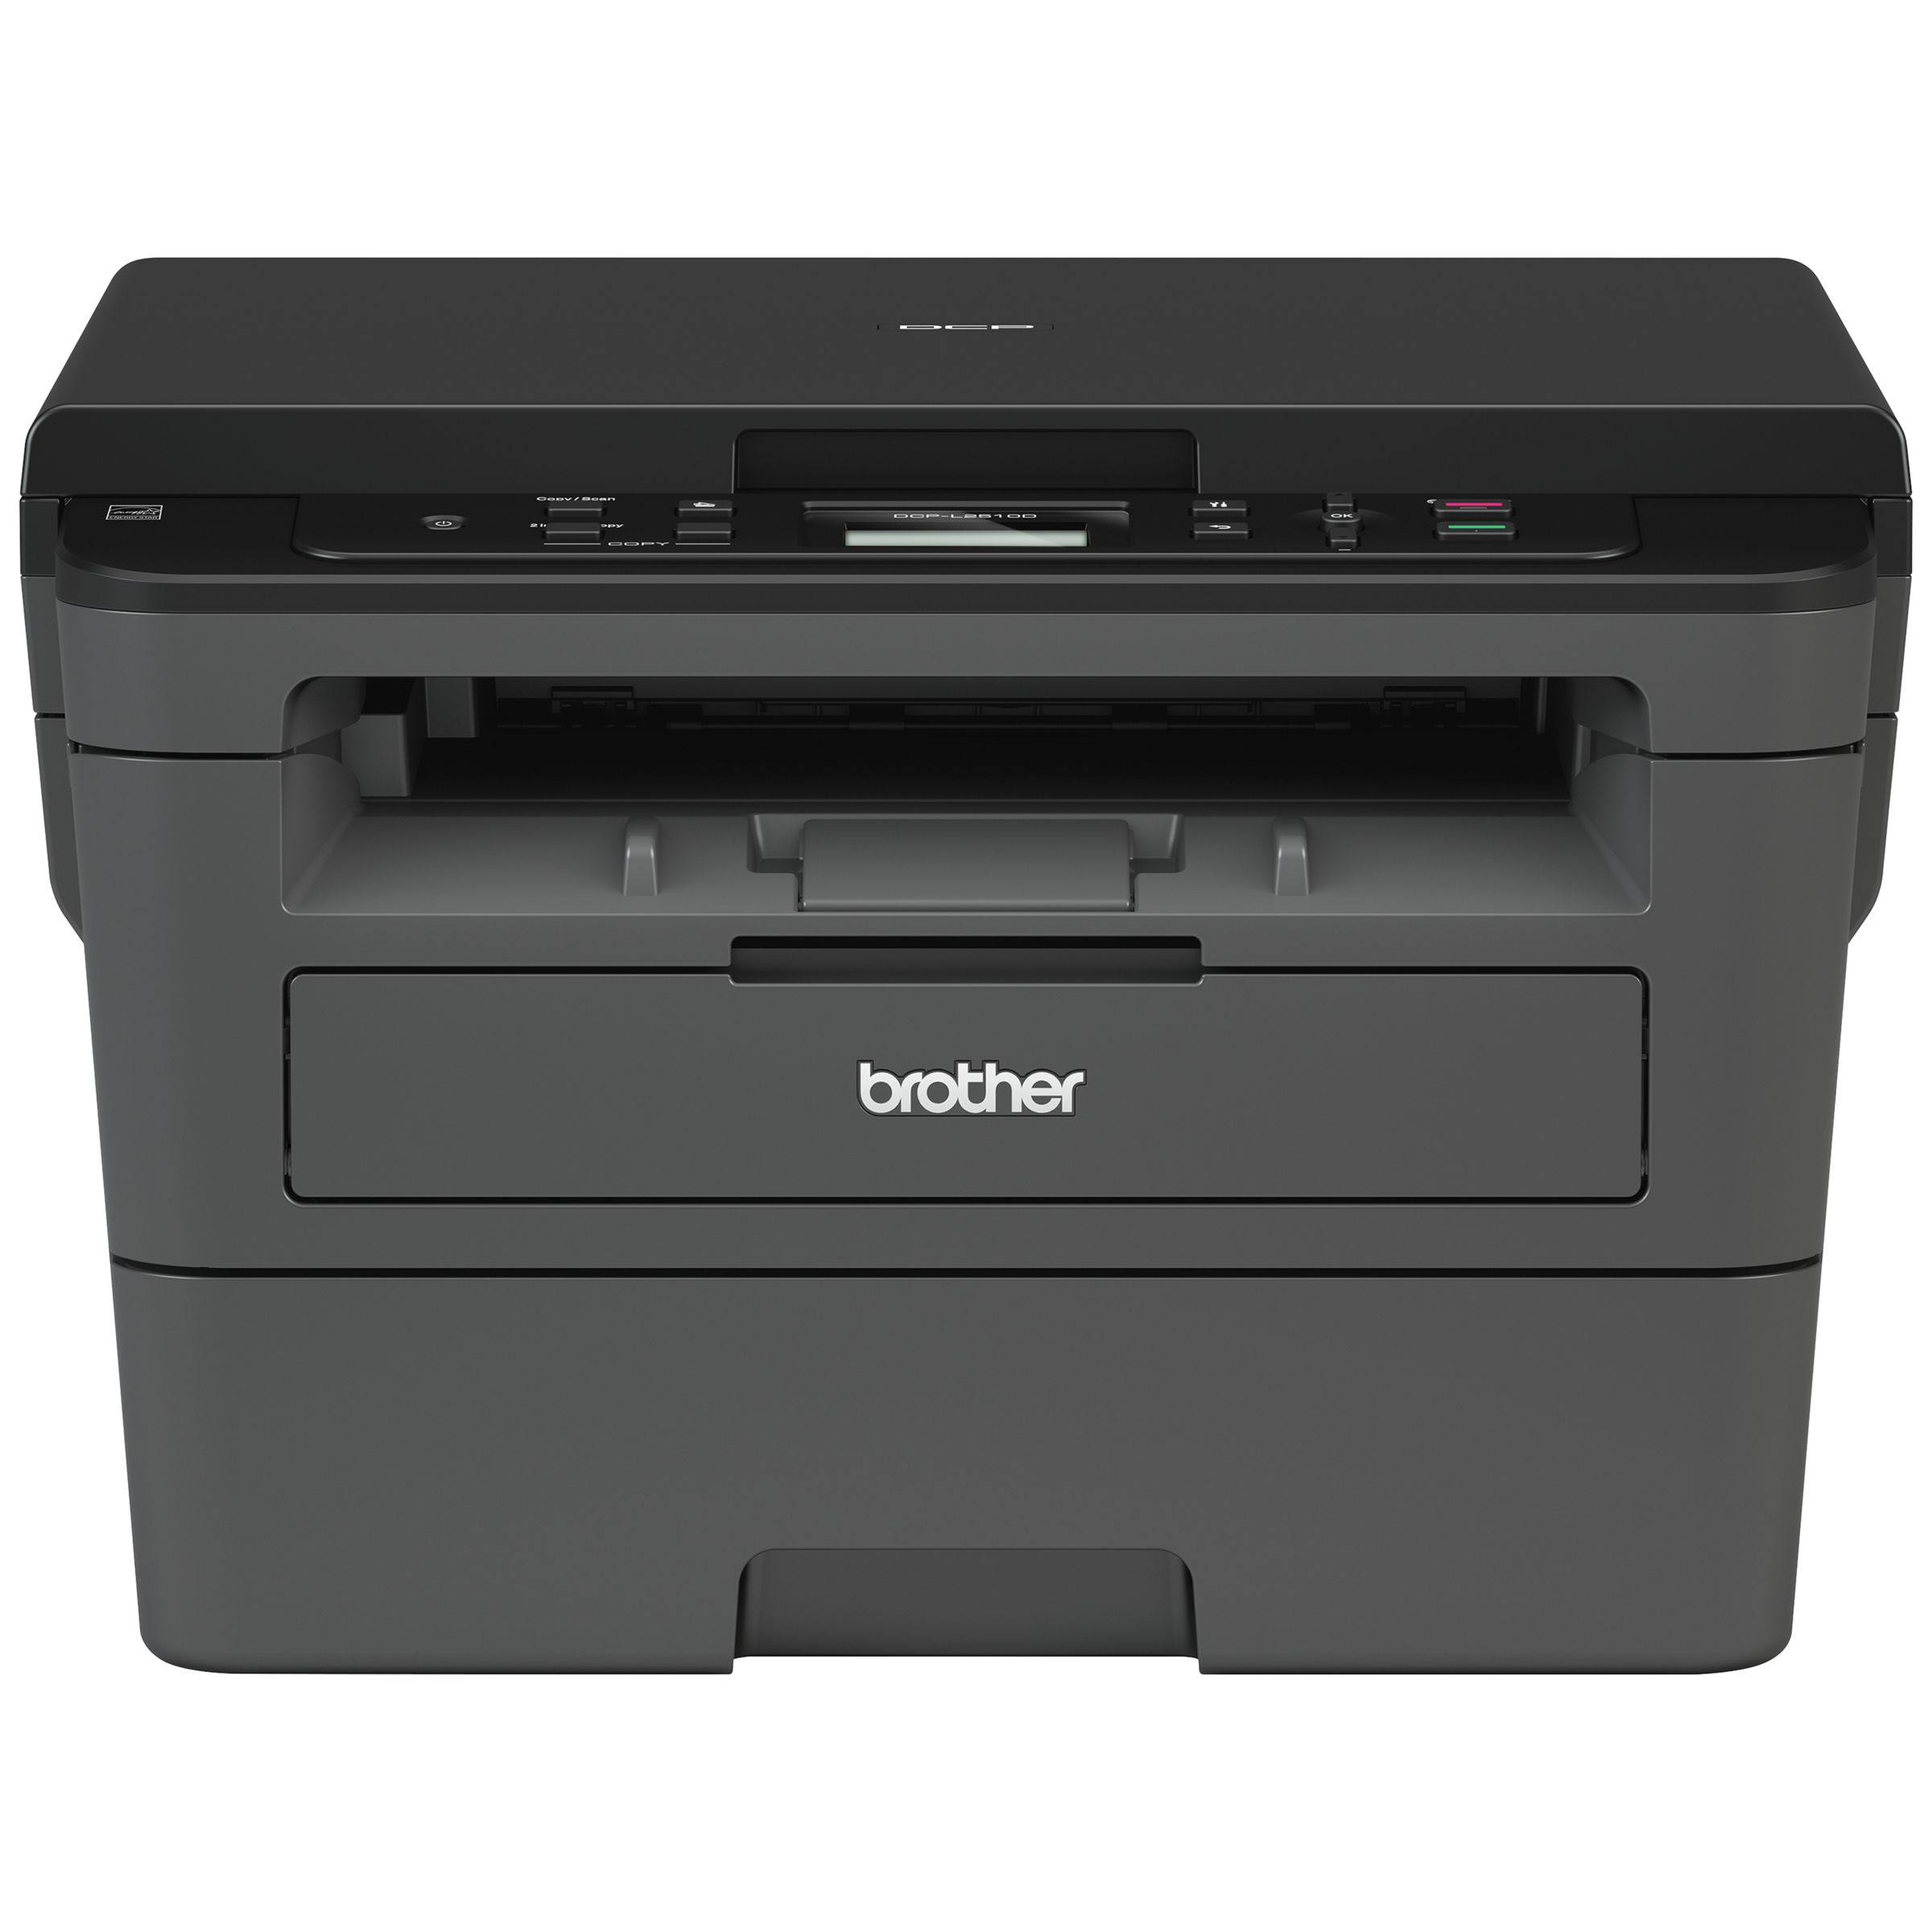 Brother Brother DCP-L2510D Compact Three-In-One Mono Laser Printer